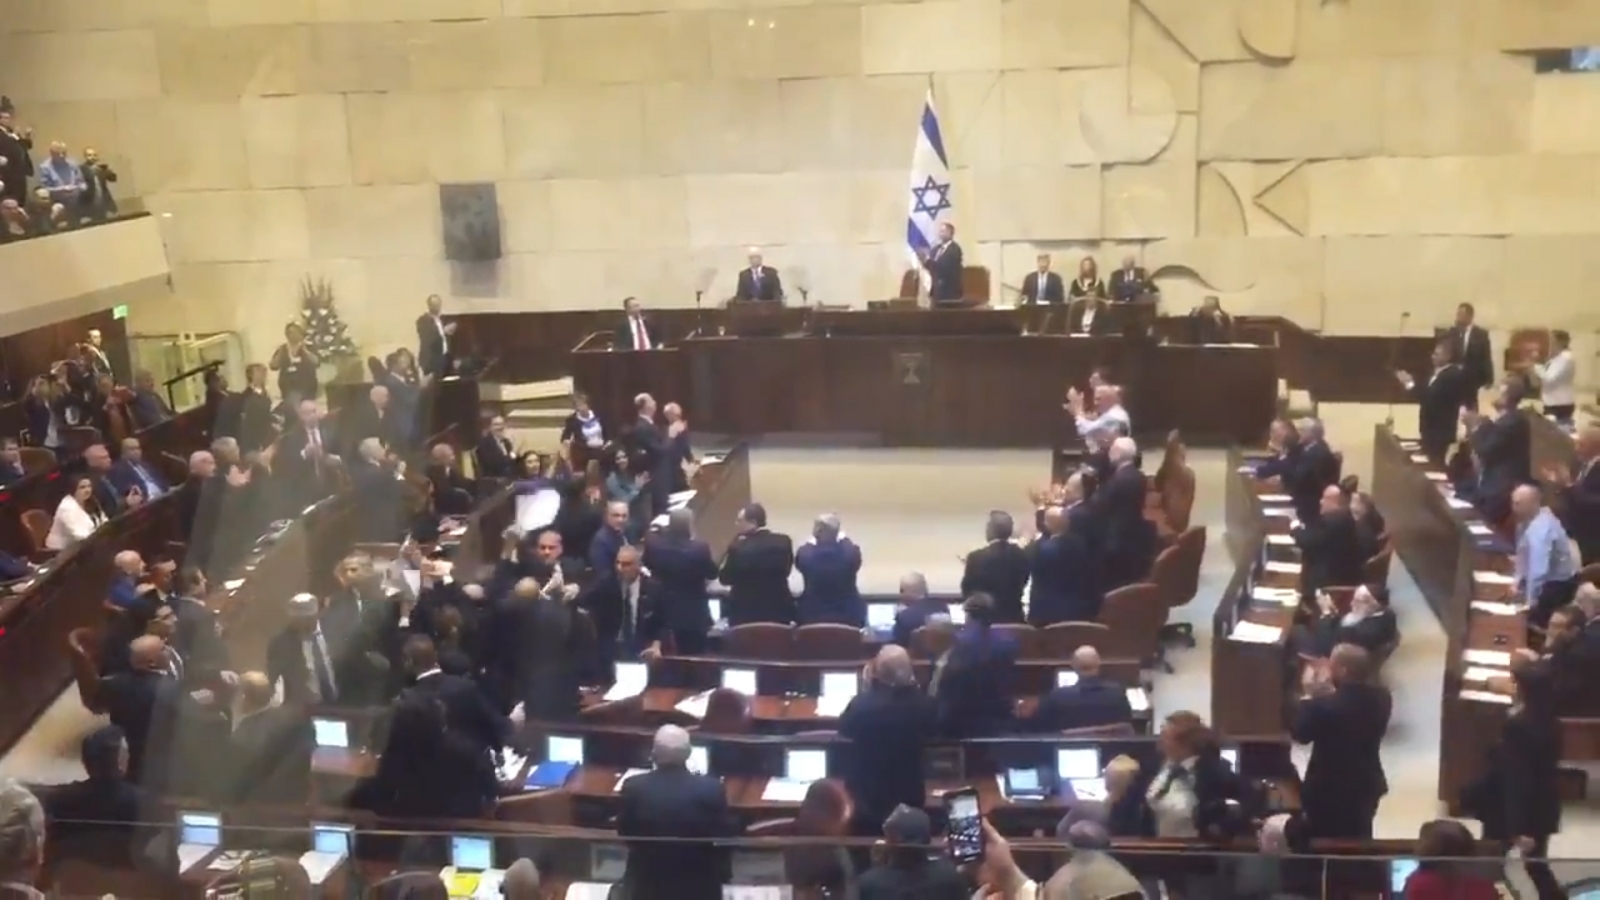 Arab Lawmakers Ejected From The Israeli Parliament During Pence Speech